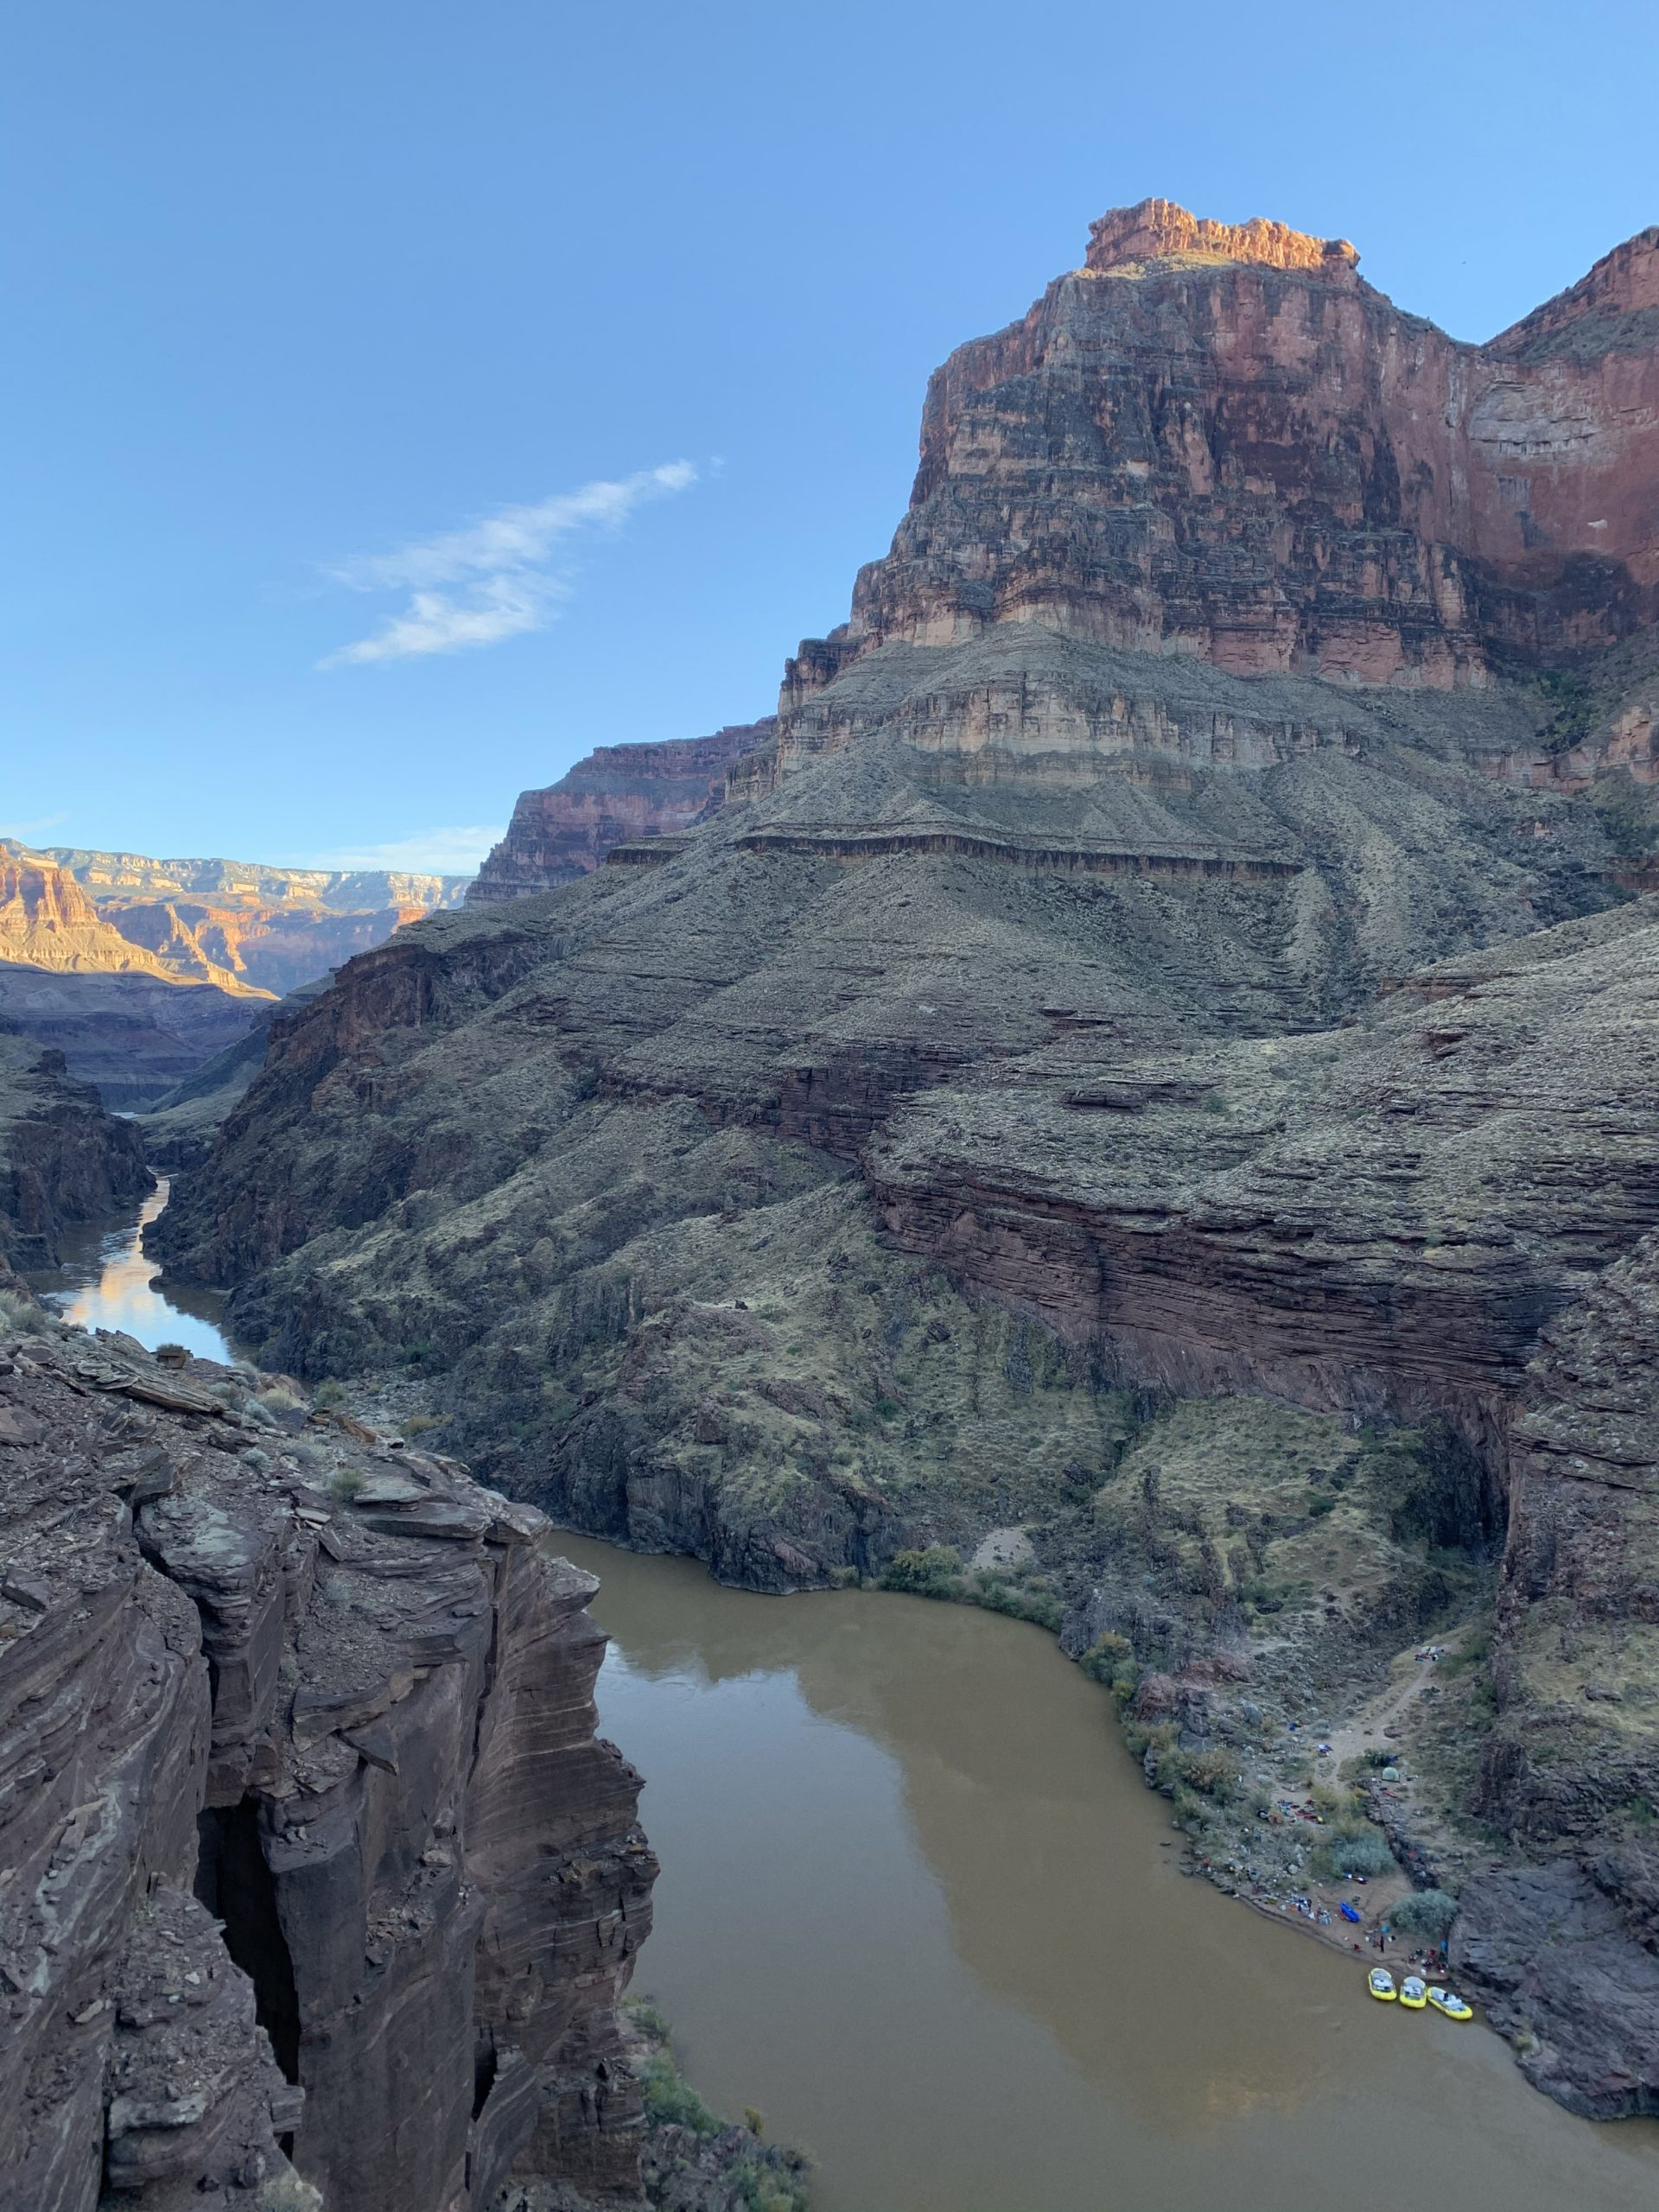 Looking into the grand canyon from the top of deer creek